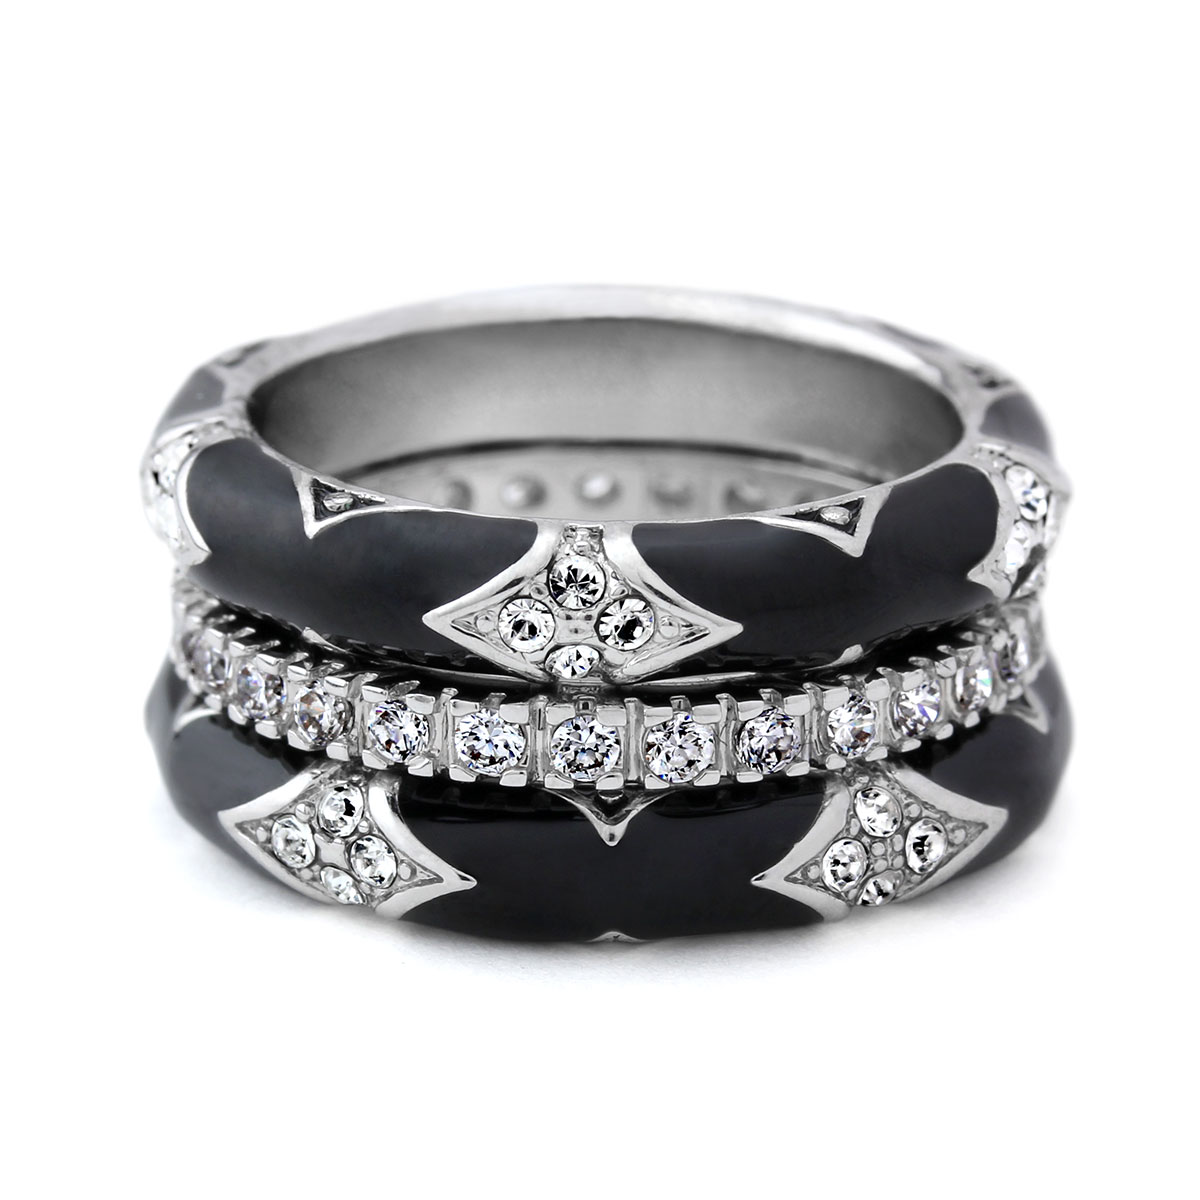 344078-Black 'Fiesta' Ring Set